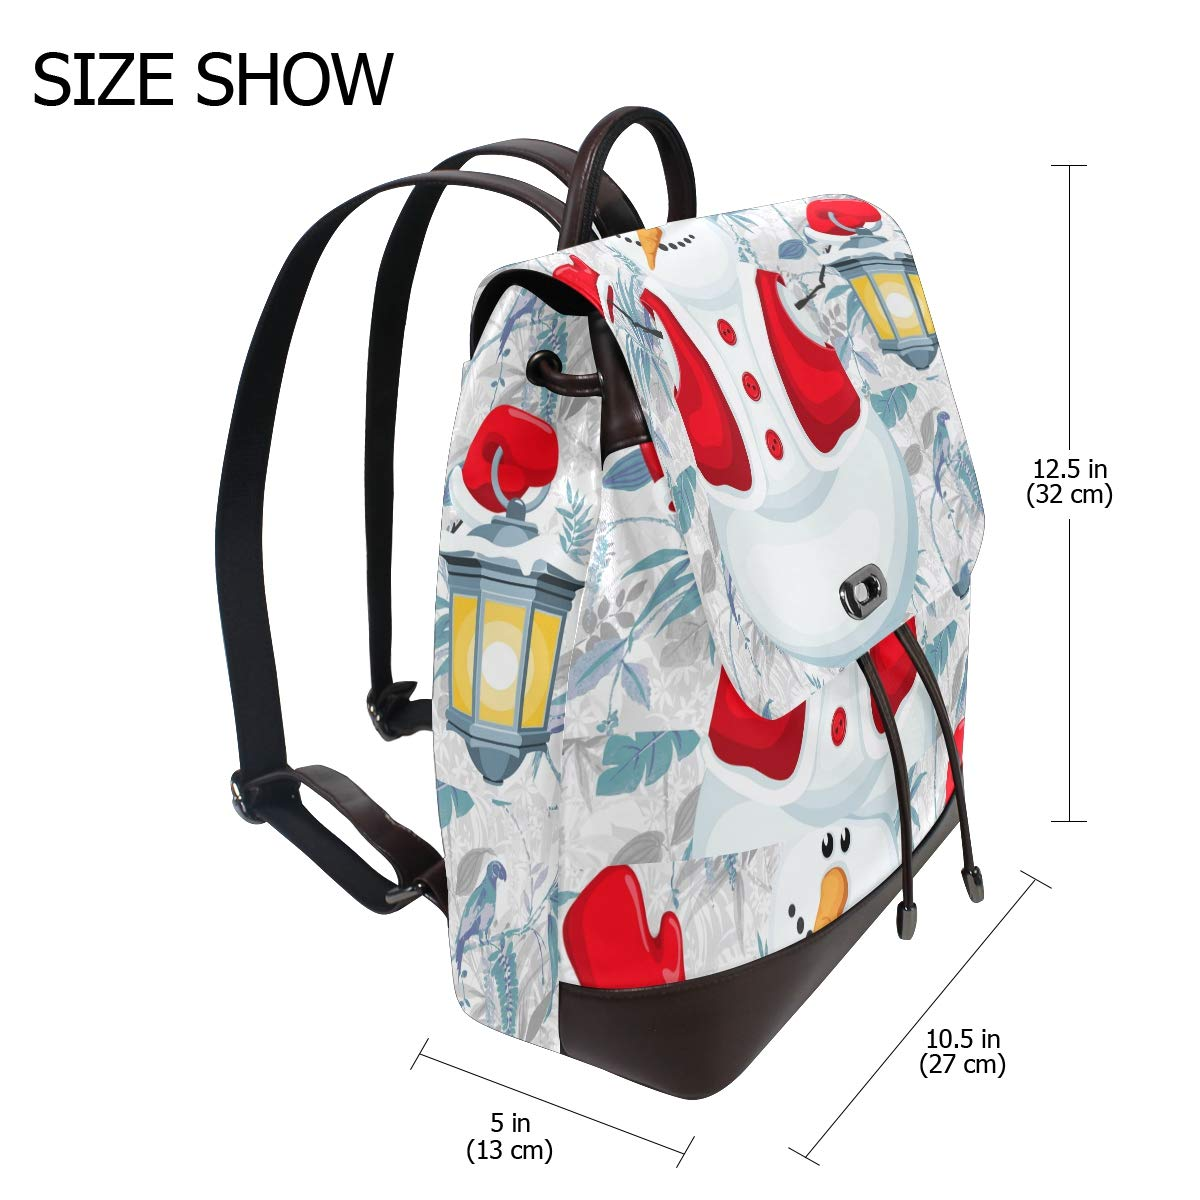 PU Leather Shoulder Bag,Christmas Snowman With Lantern Backpack,Portable Travel School Rucksack,Satchel with Top Handle